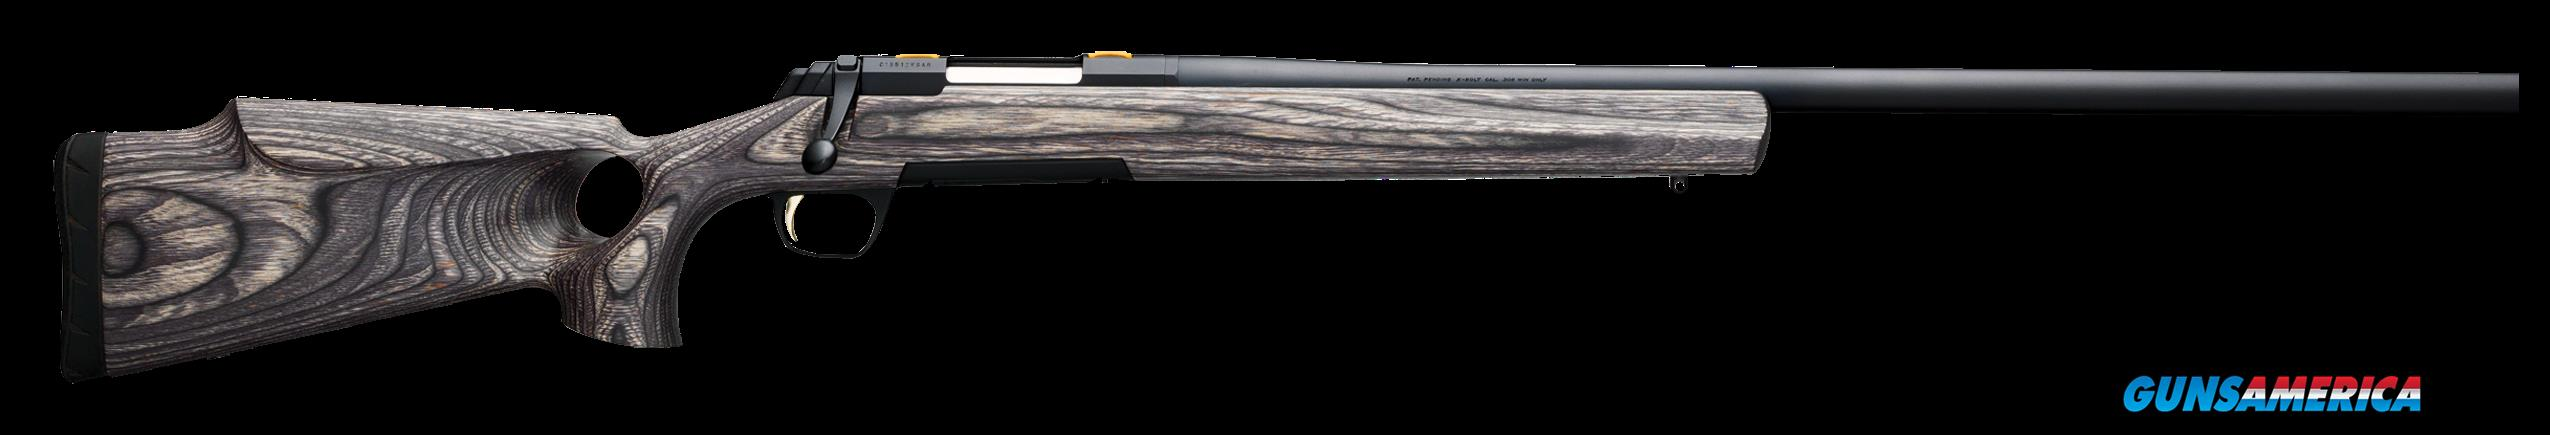 "Browning 035338274 X-Bolt Eclipse Varmint Bolt 204 Ruger 26"" 5+1 Laminate Thumbhole Black/Gray Stock  Guns > Rifles > Browning Rifles > Bolt Action"